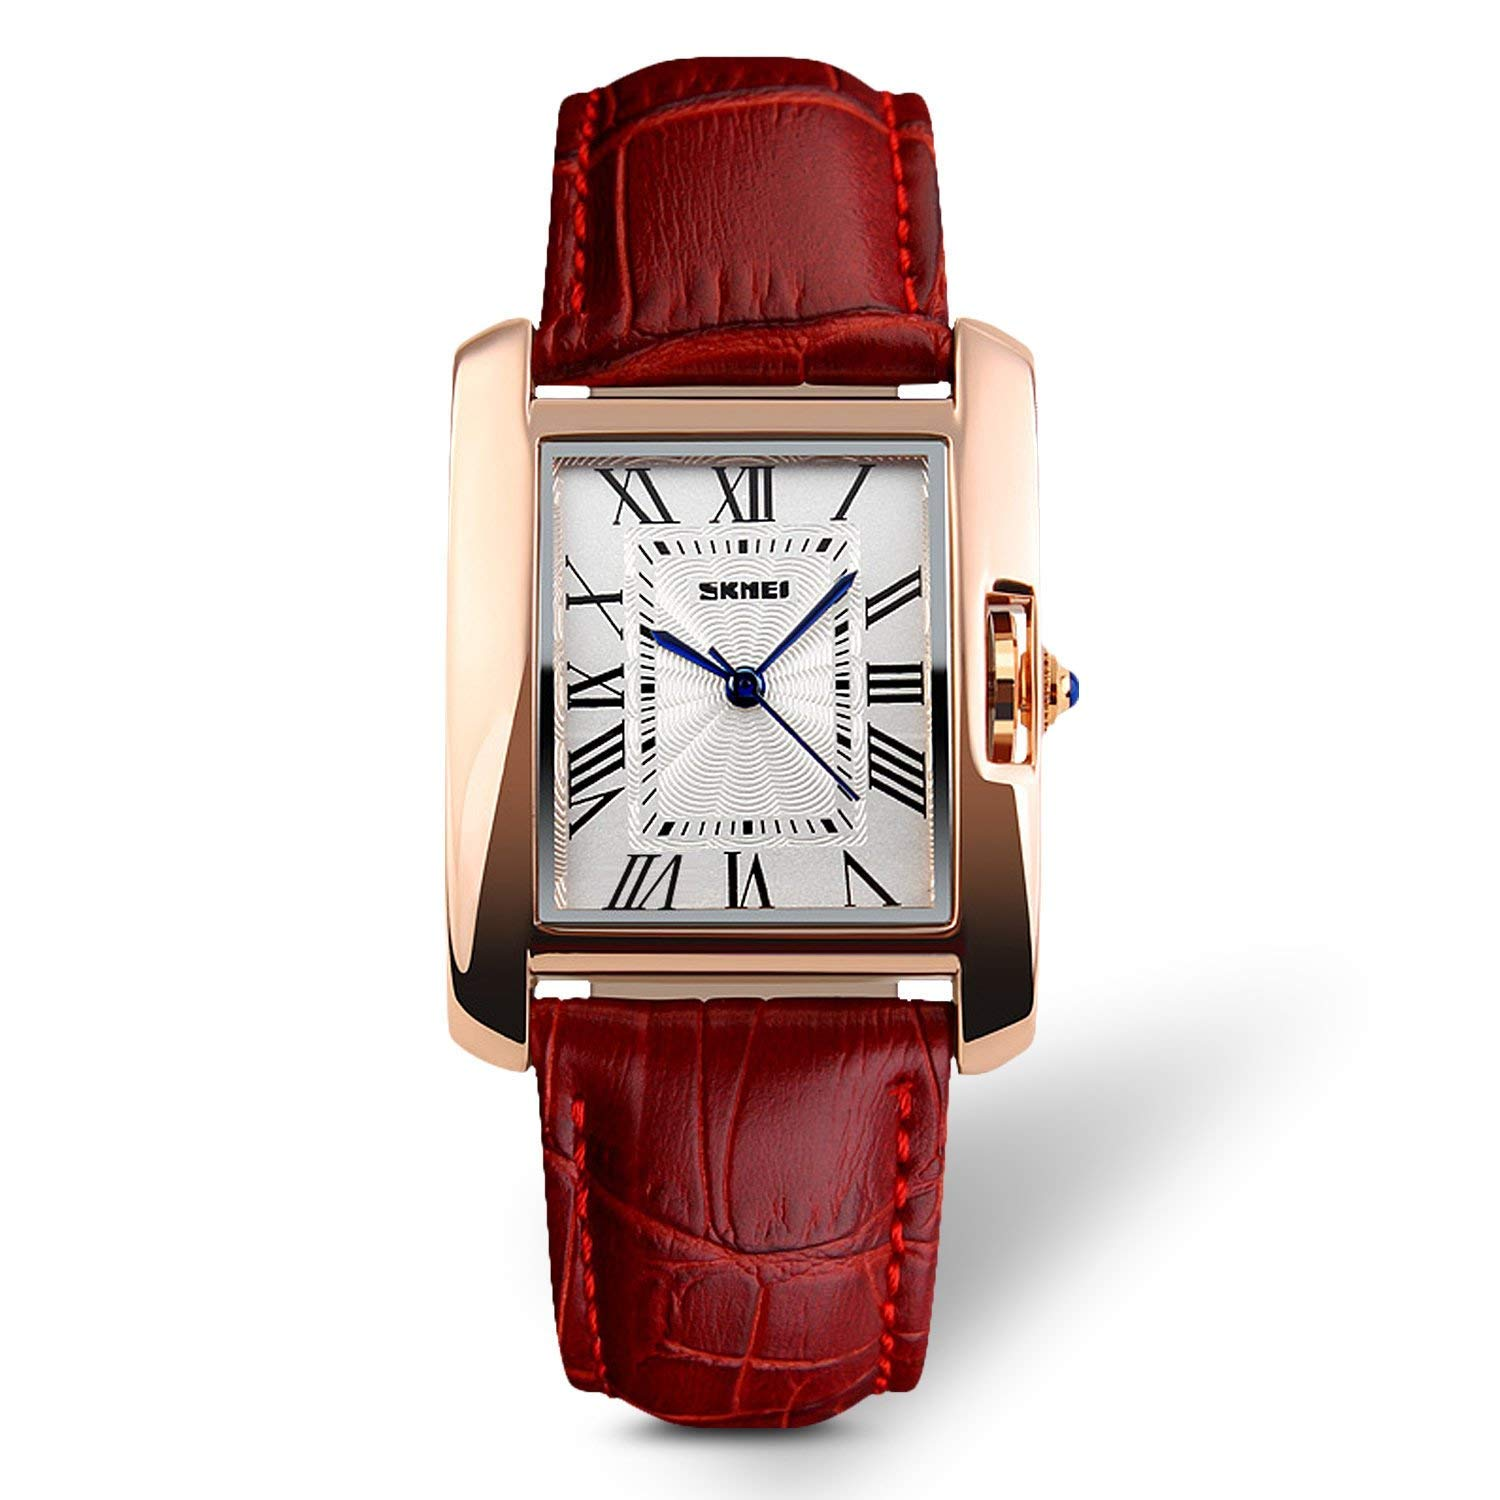 Aposon Womens Analog Watches Quartz Wristwatch Business Casual Watch Unique Dress Watch Square Dial Roman Numeral Strap Fashion Ladies Cheap Watches on Sale Birthday Gift 30M Waterproof (red)